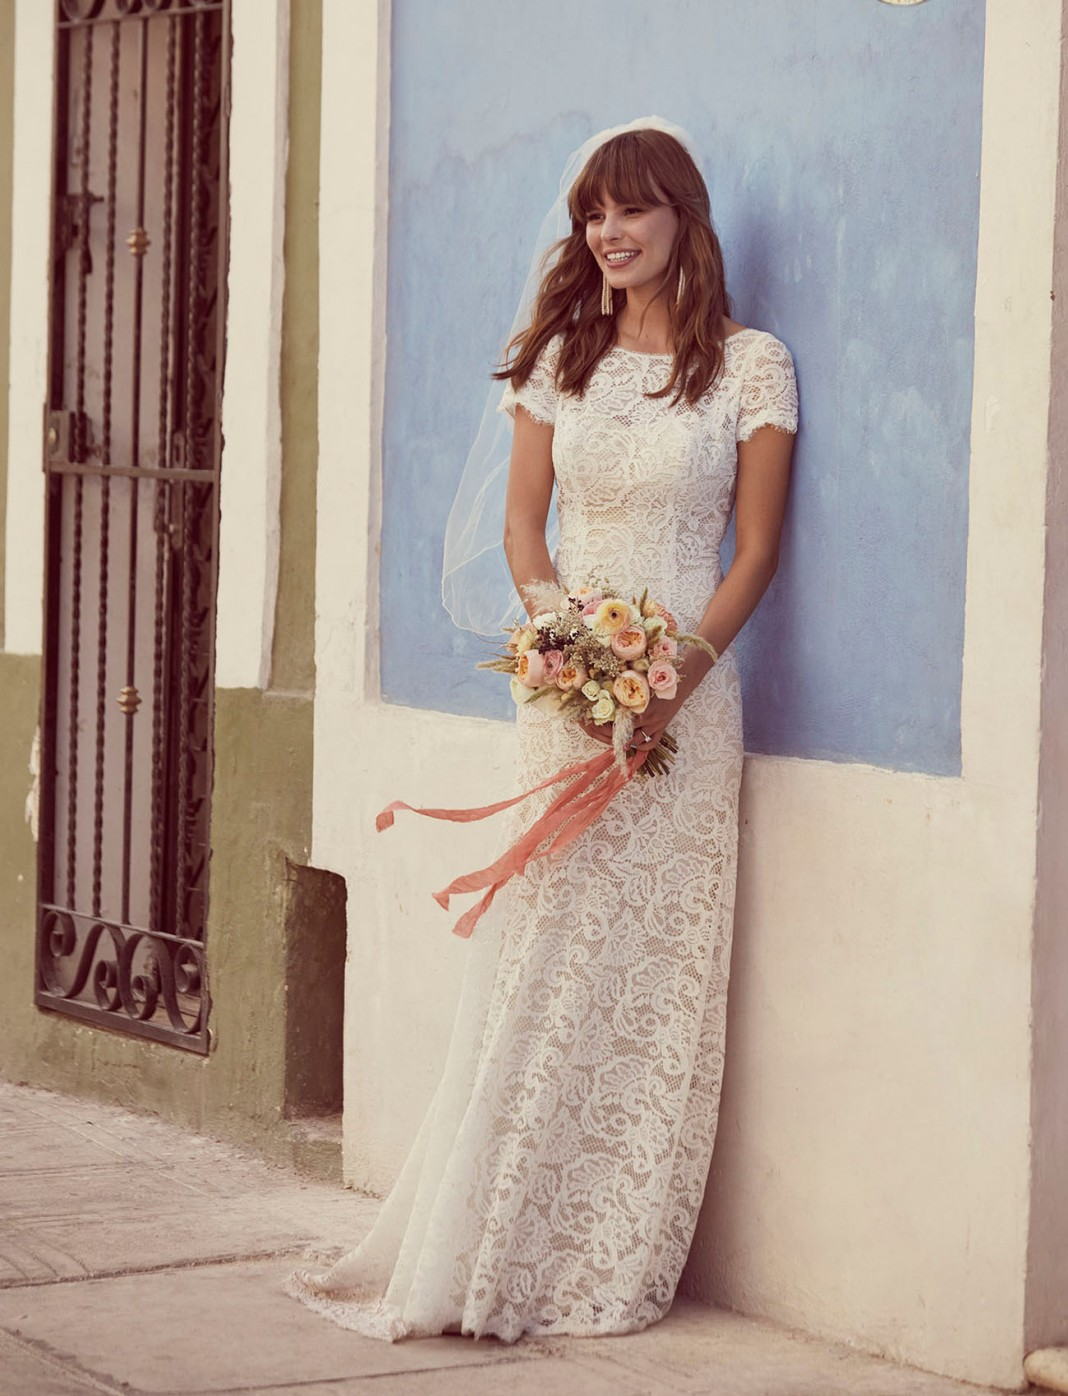 For the Free-Spirited Bride: Introducing the Galina Collection From David's Bridal